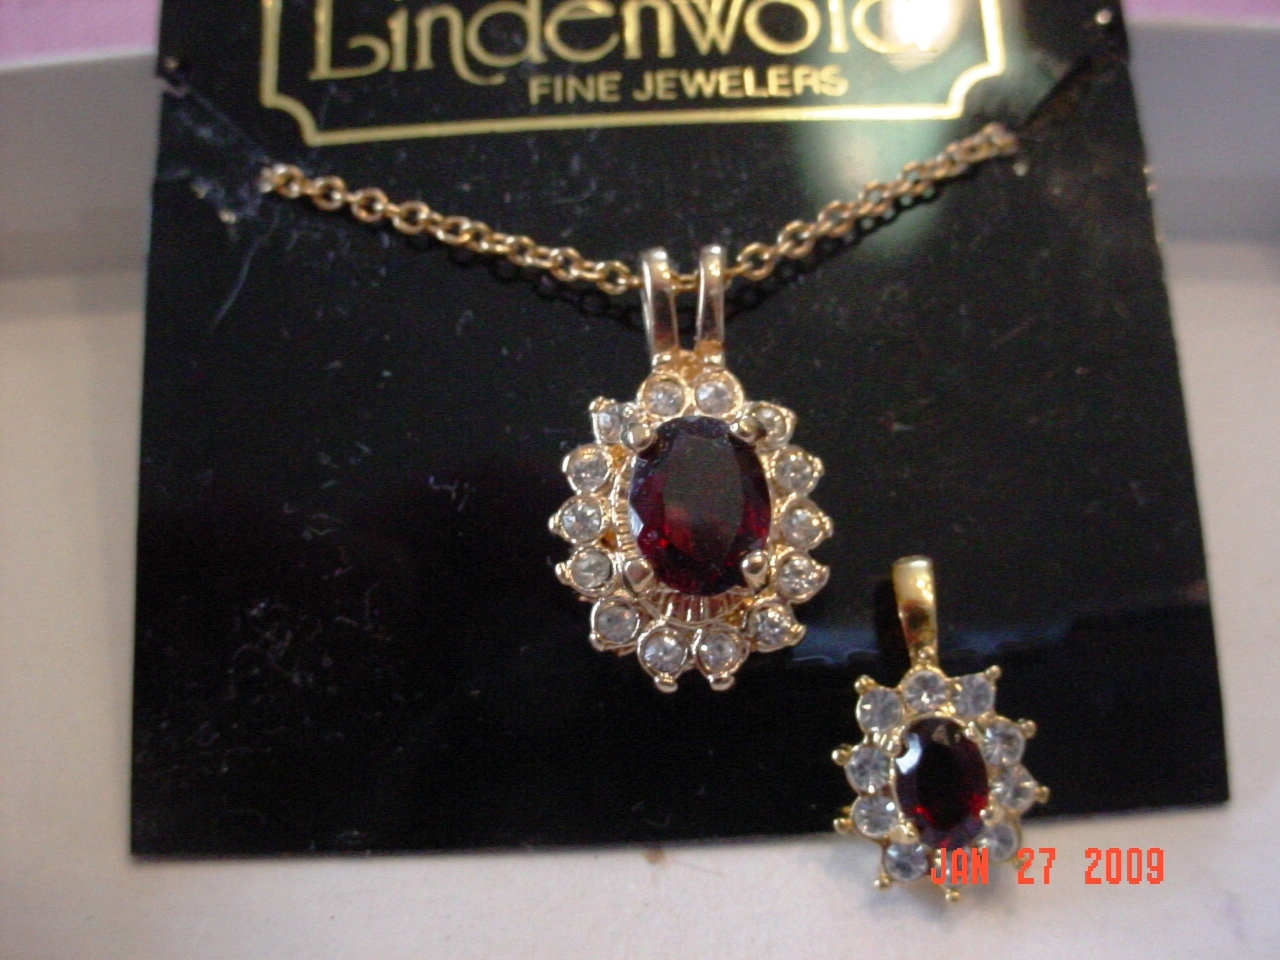 Lindenwold Fine Jewelers Ruby/Red Colored Pendant Chain Neck